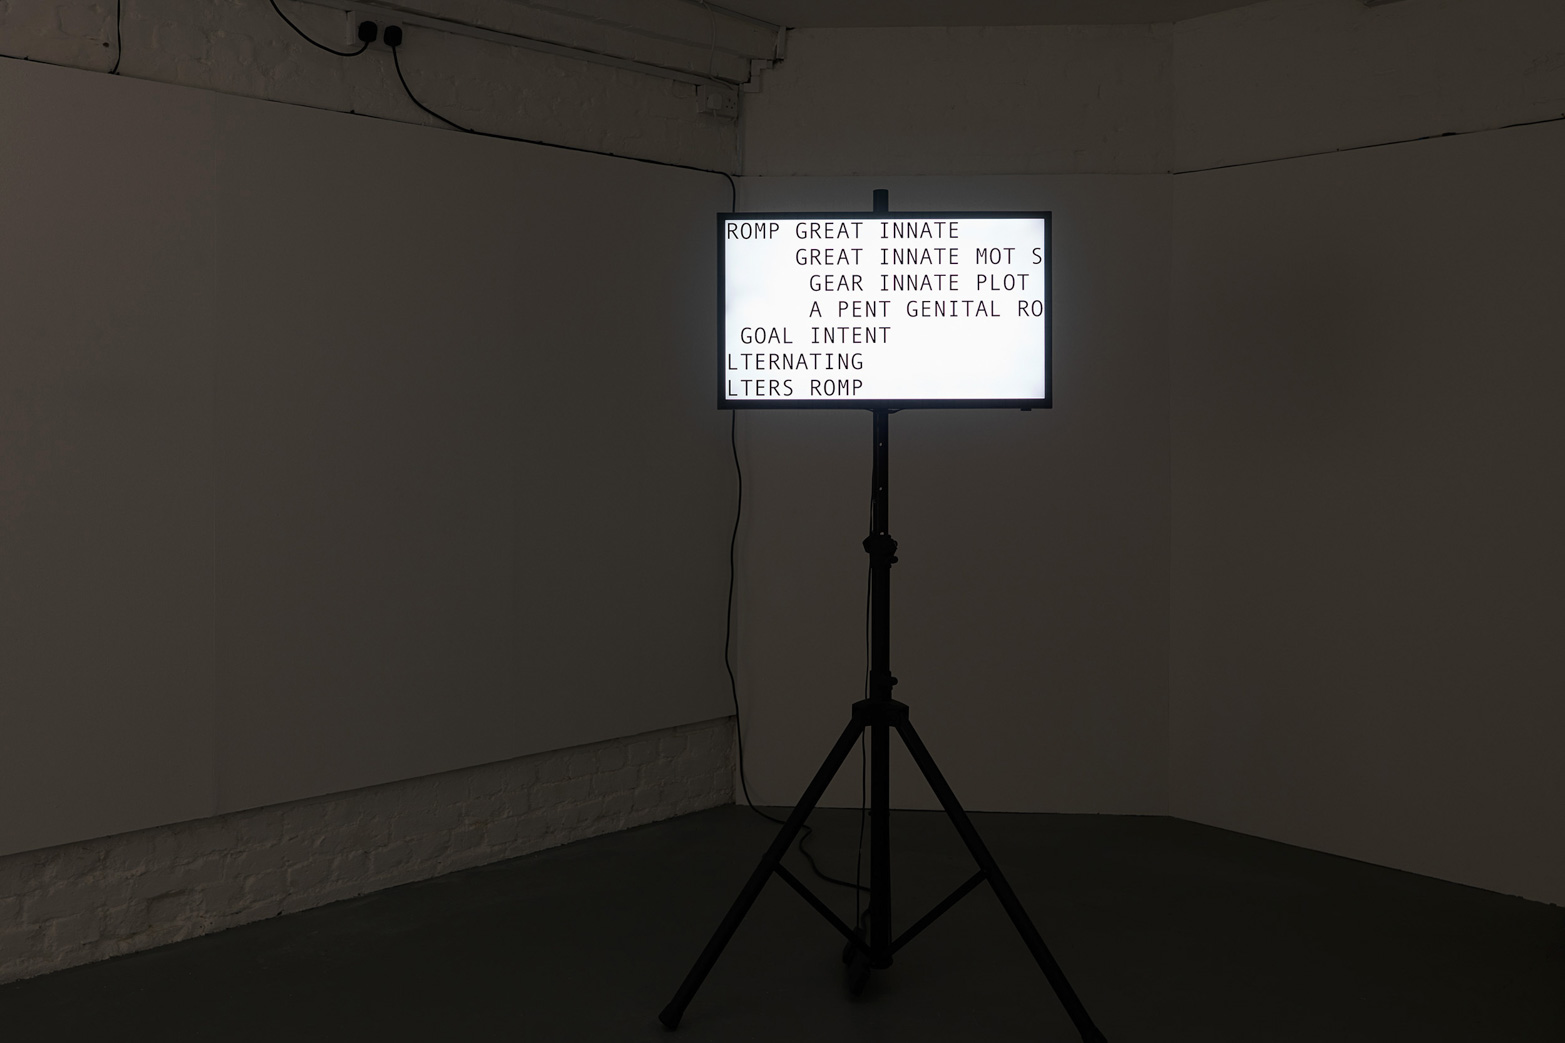 Anna Barham, Argent Minotaur Slept, 2012. Courtesy of Tenderpixel, and Arcade, London.